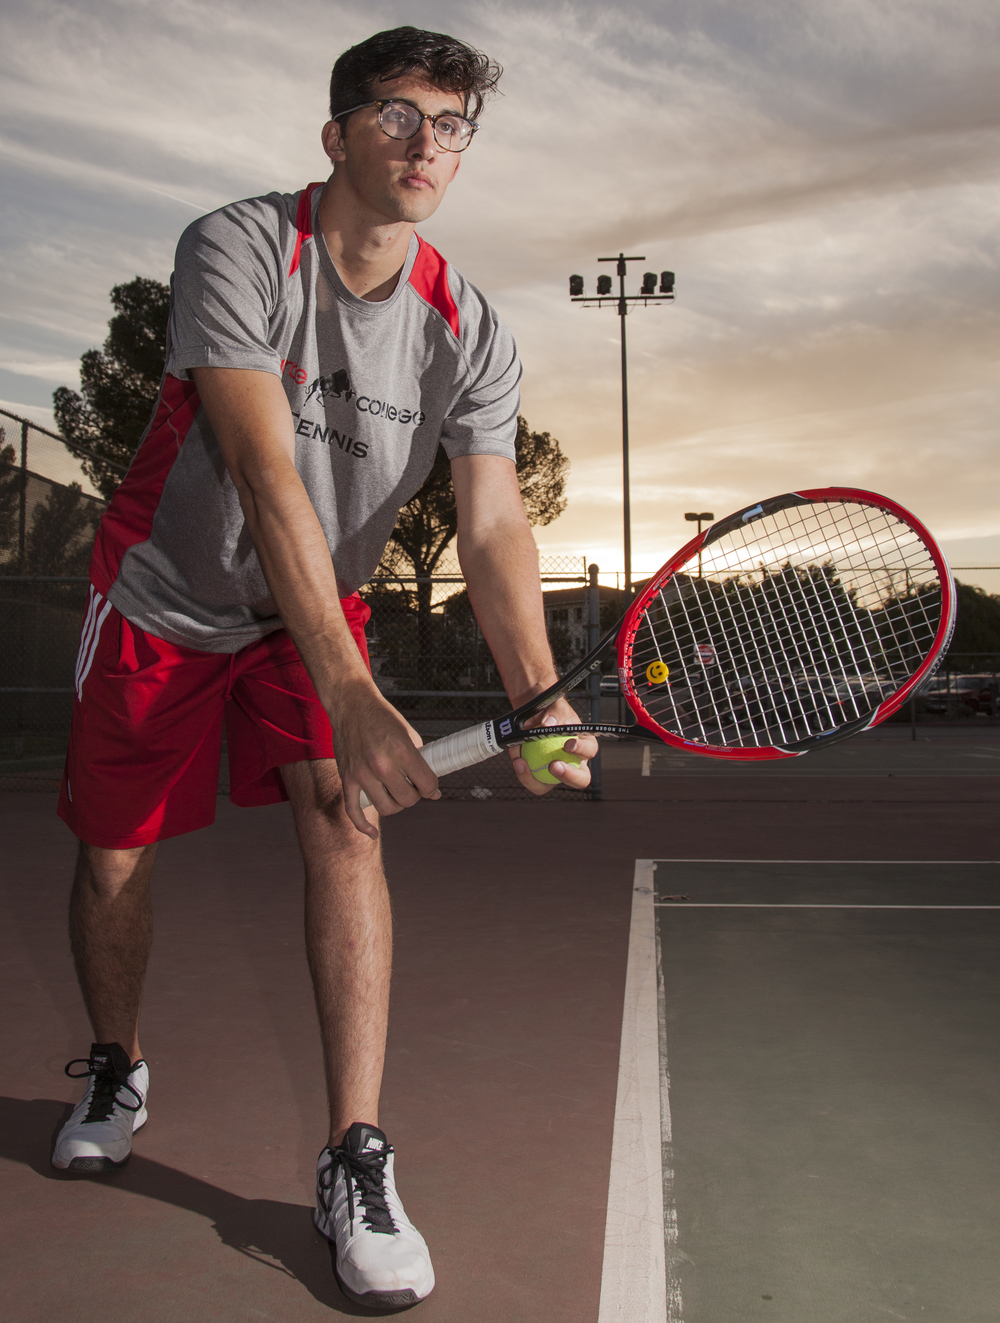 """He stood by me every single day motivating me that I could do it and I will do it because he's there,"" said Anthony Avakian, who was in a car accident that left him in a  coma two years ago. Avakian now plays tennis for Pierce."